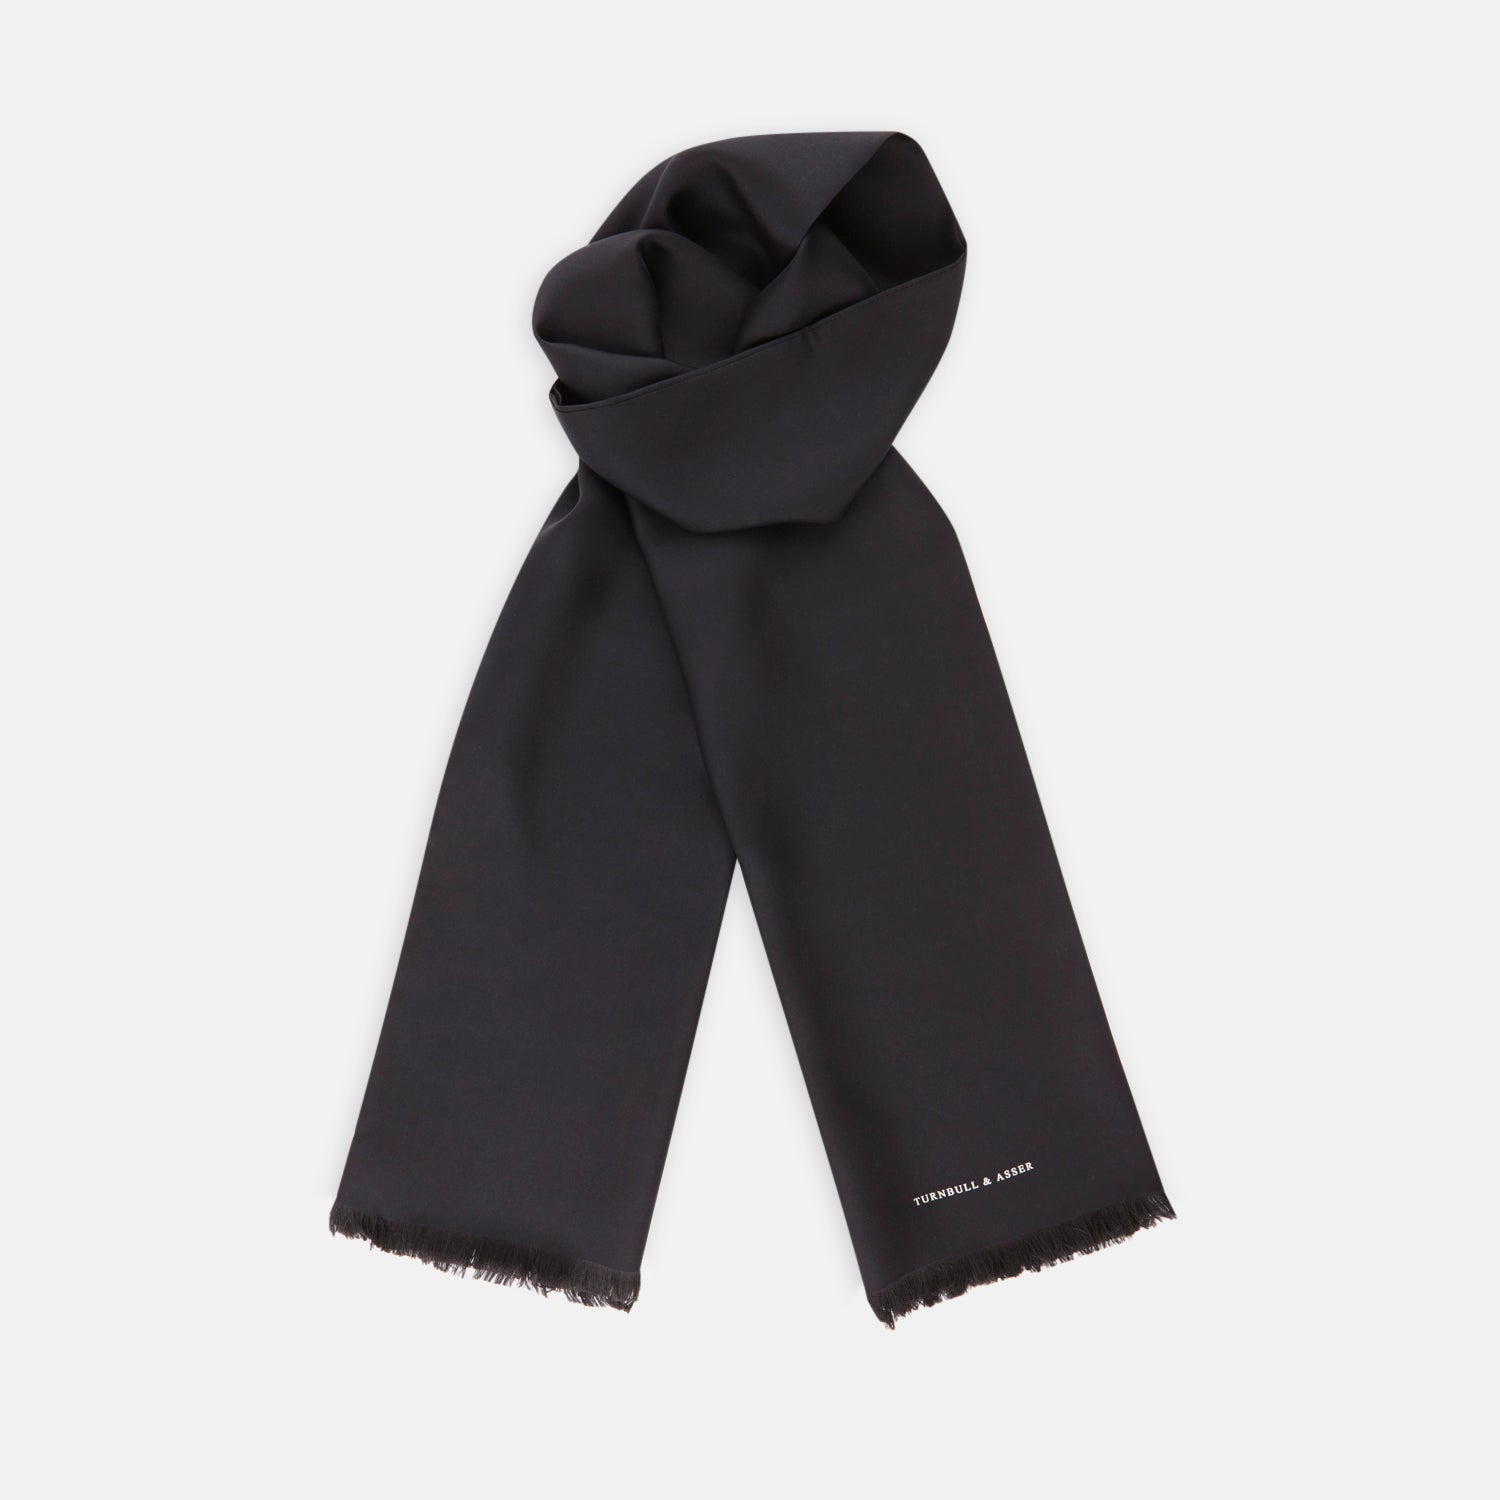 Plain Black Silk Scarf